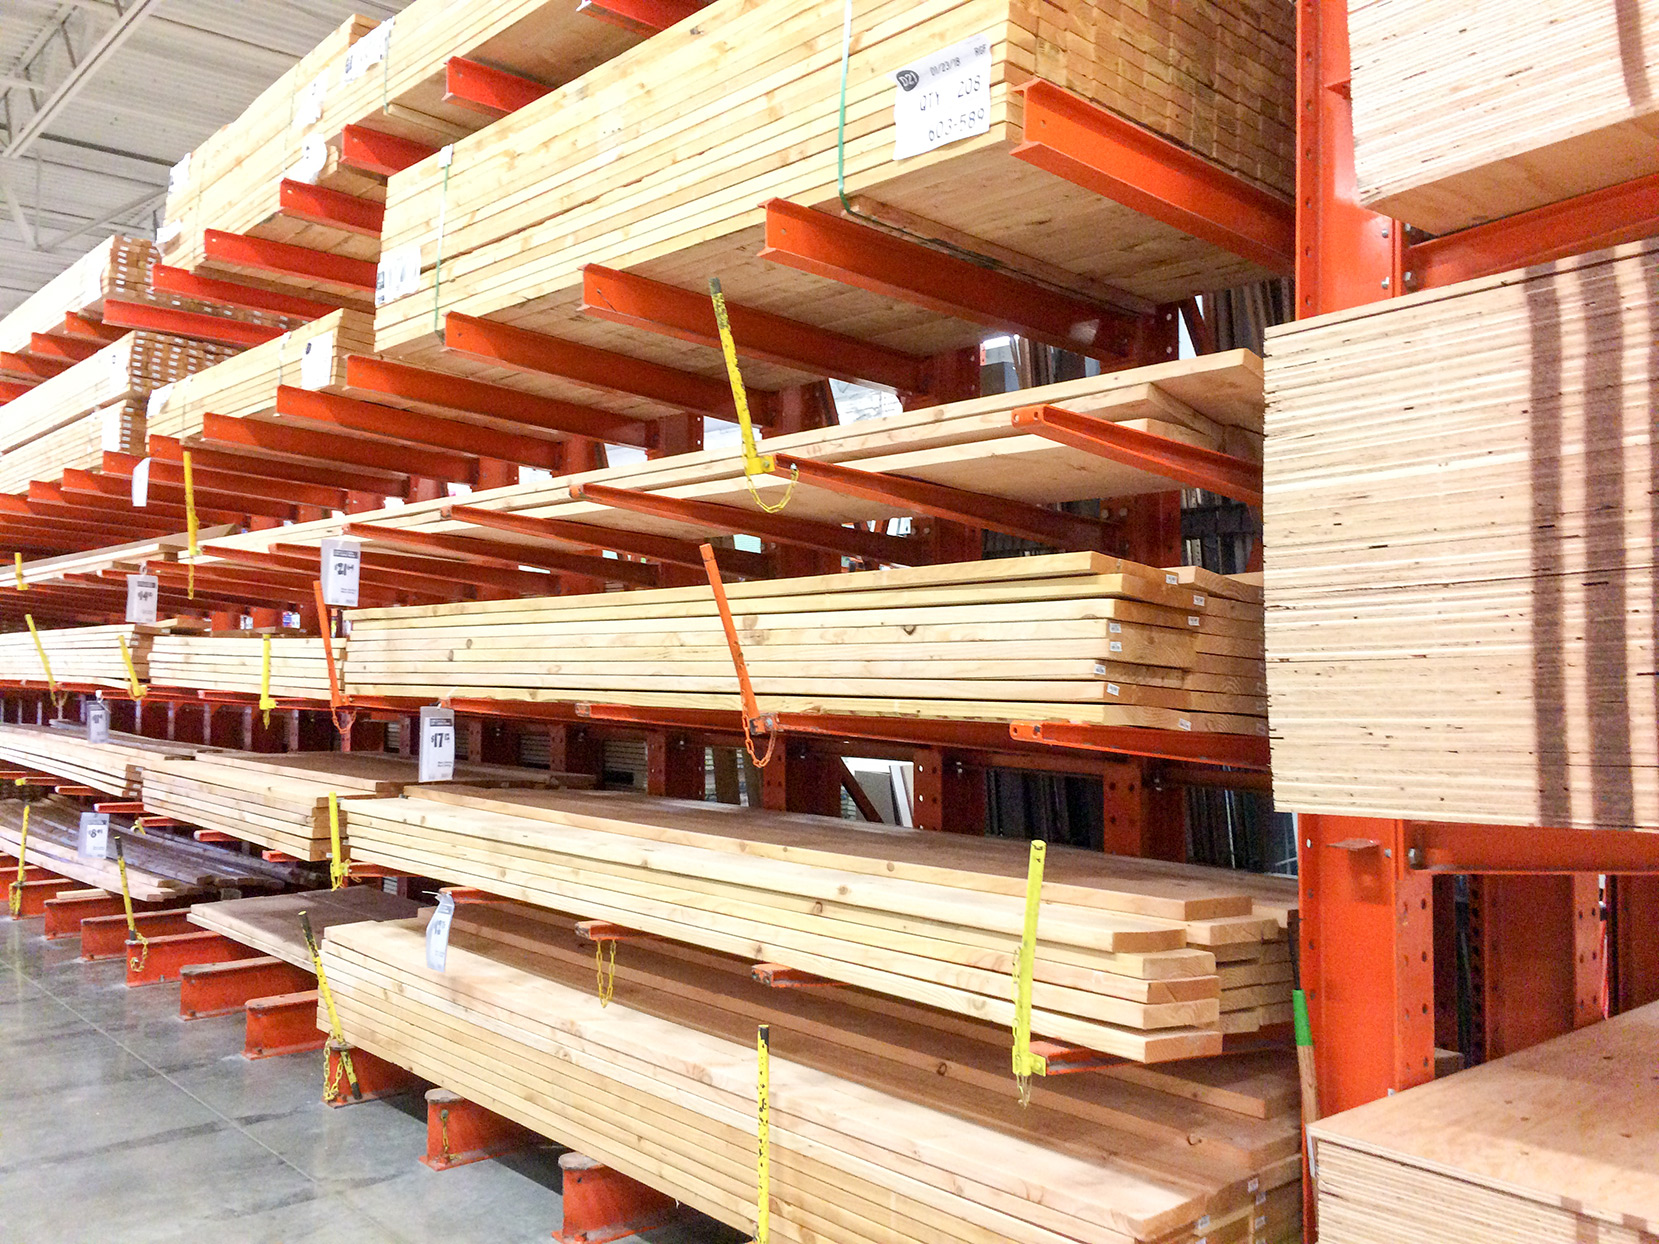 shelves of lumber wood at a hardware store for home repair